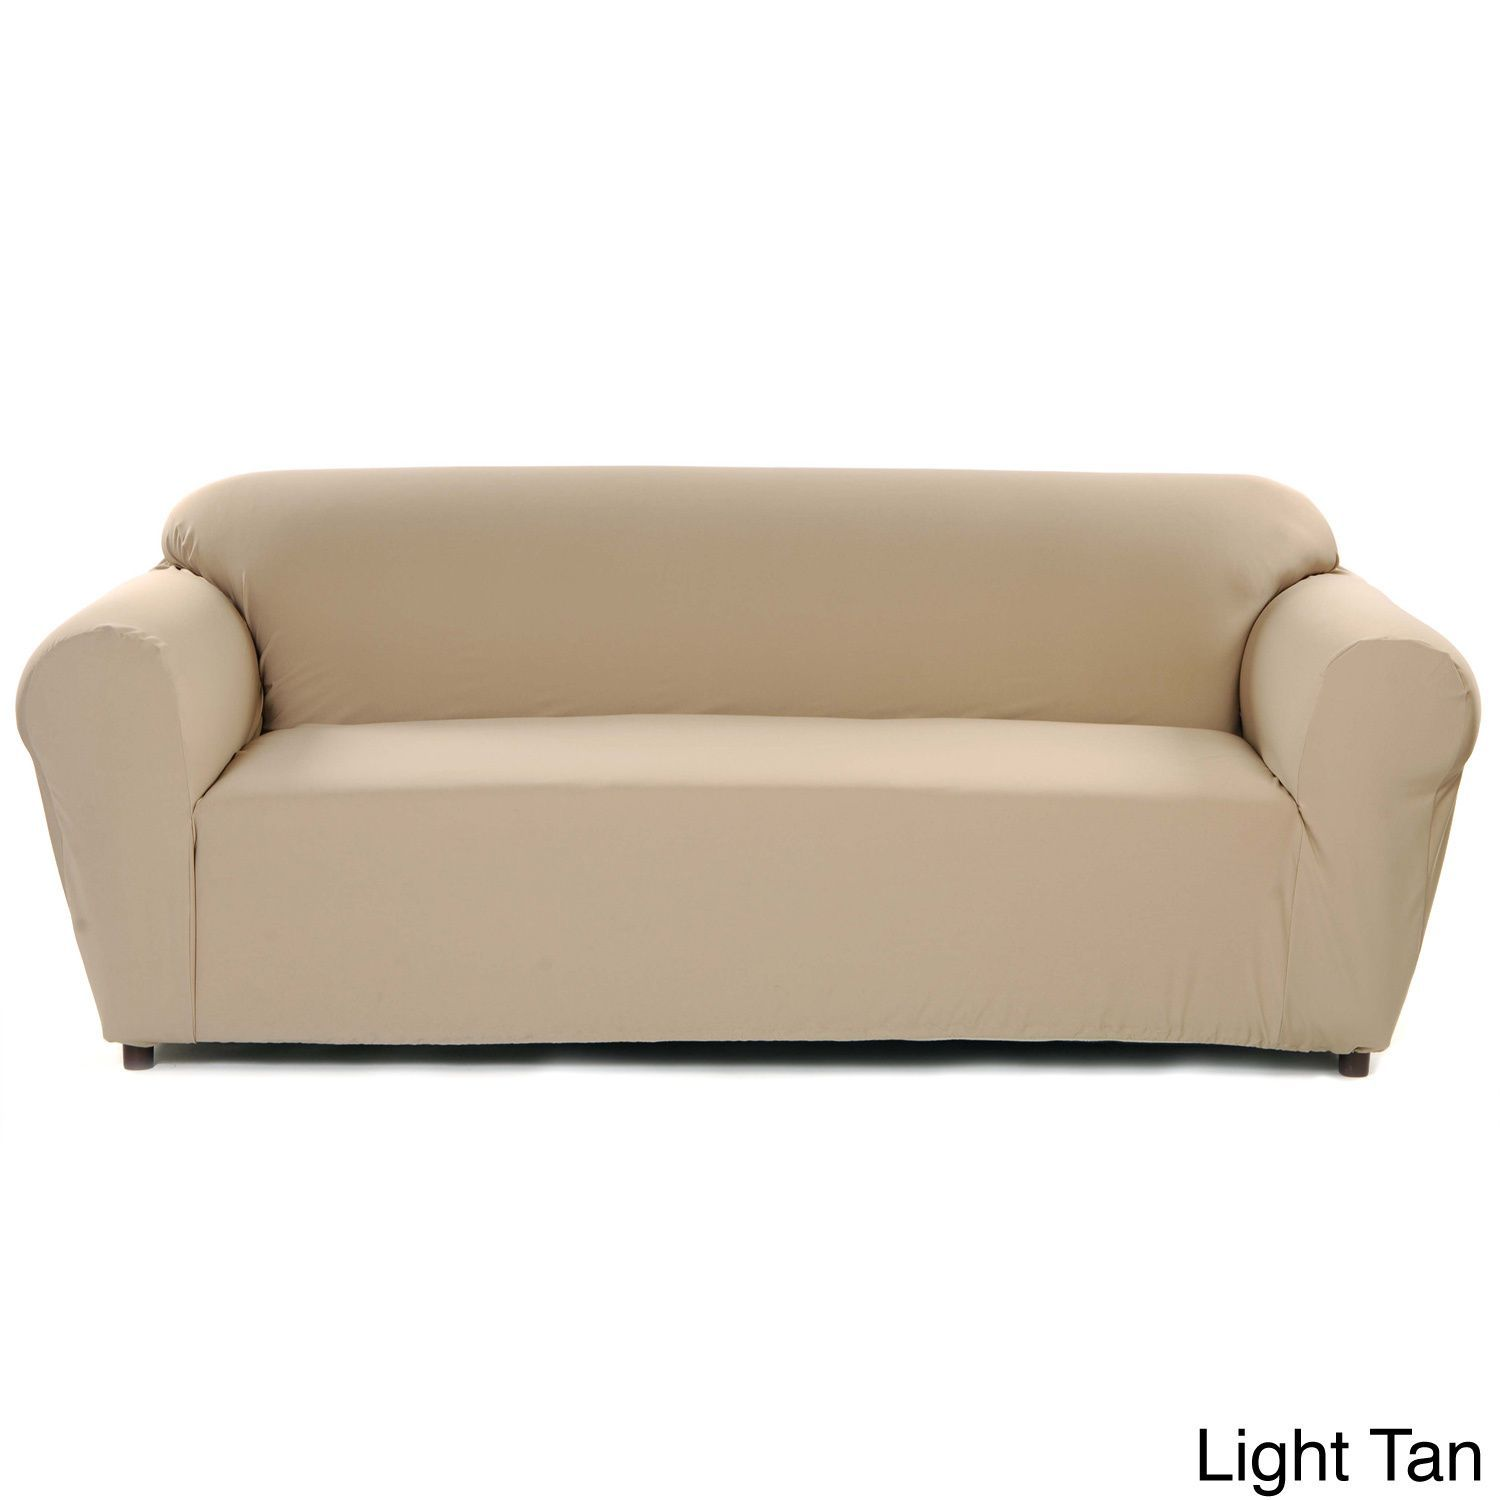 Stretch Poly Twill e Piece Sofa Slipcover by Classic Slipcovers